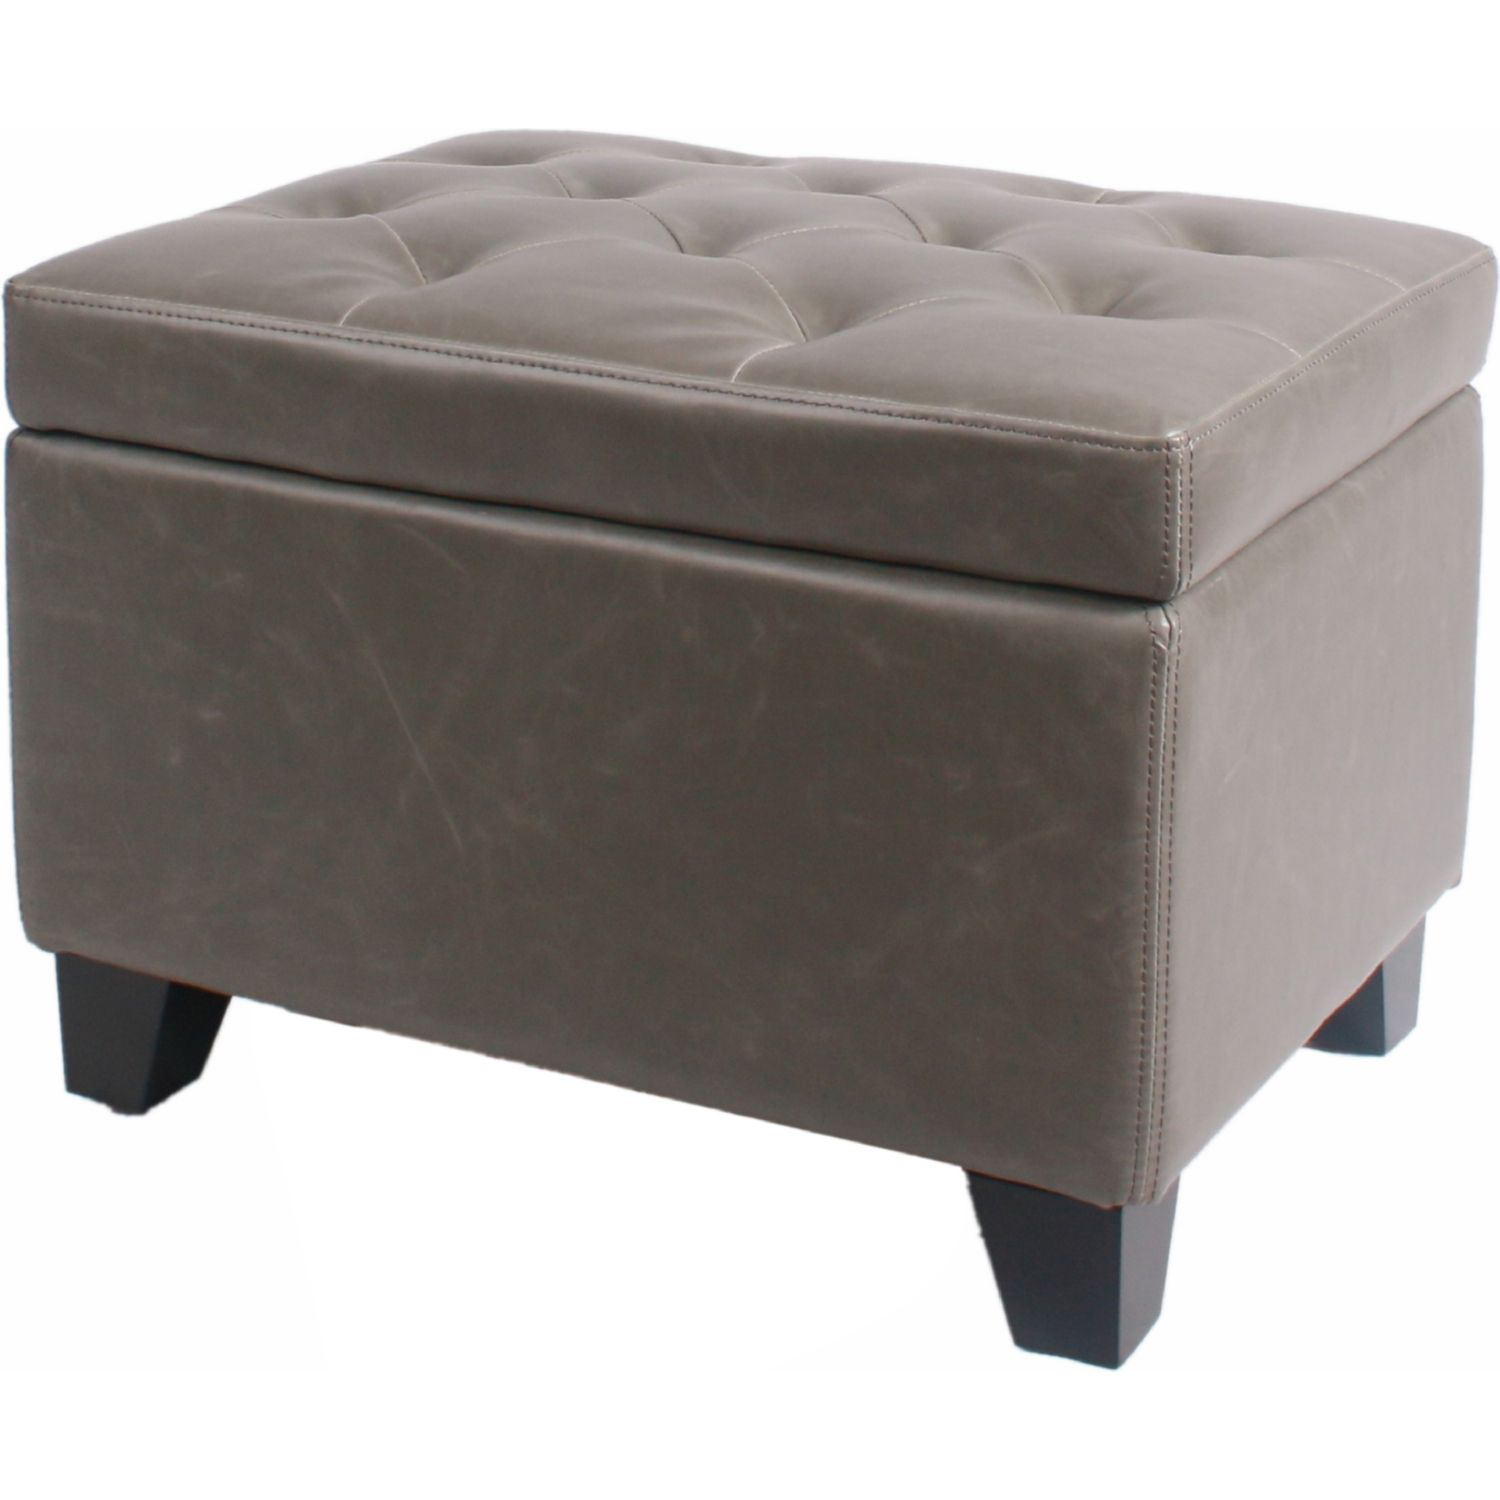 New Pacific Direct 194424b V04 Julian Rectangular Storage Ottoman Vintage Gray Bonded Leather On Drift Wood Legs Ottoman Tufted Storage Ottoman Storage Ottoman Bench